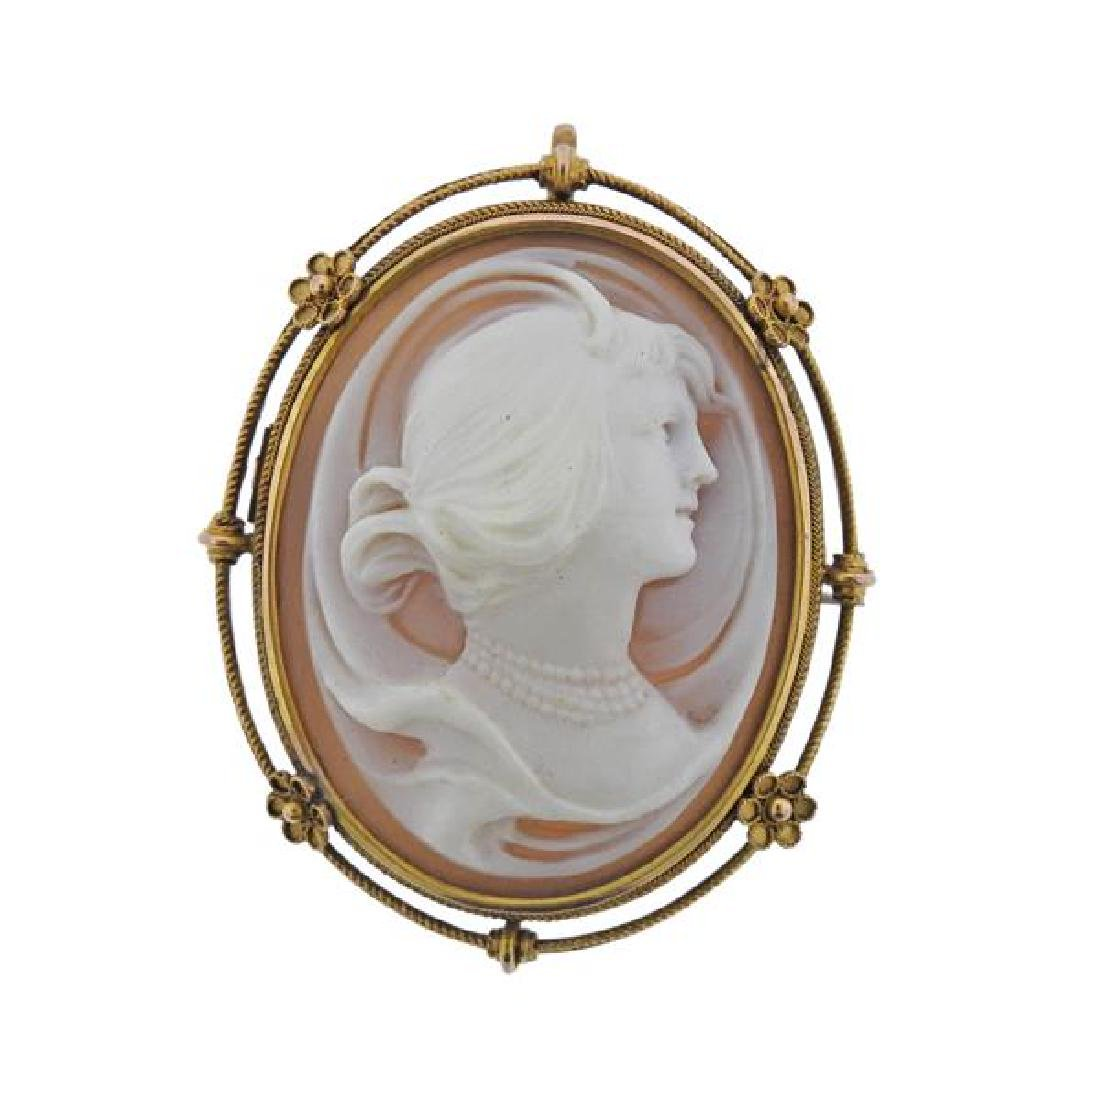 14K Gold Shell Cameo Brooch Pendant